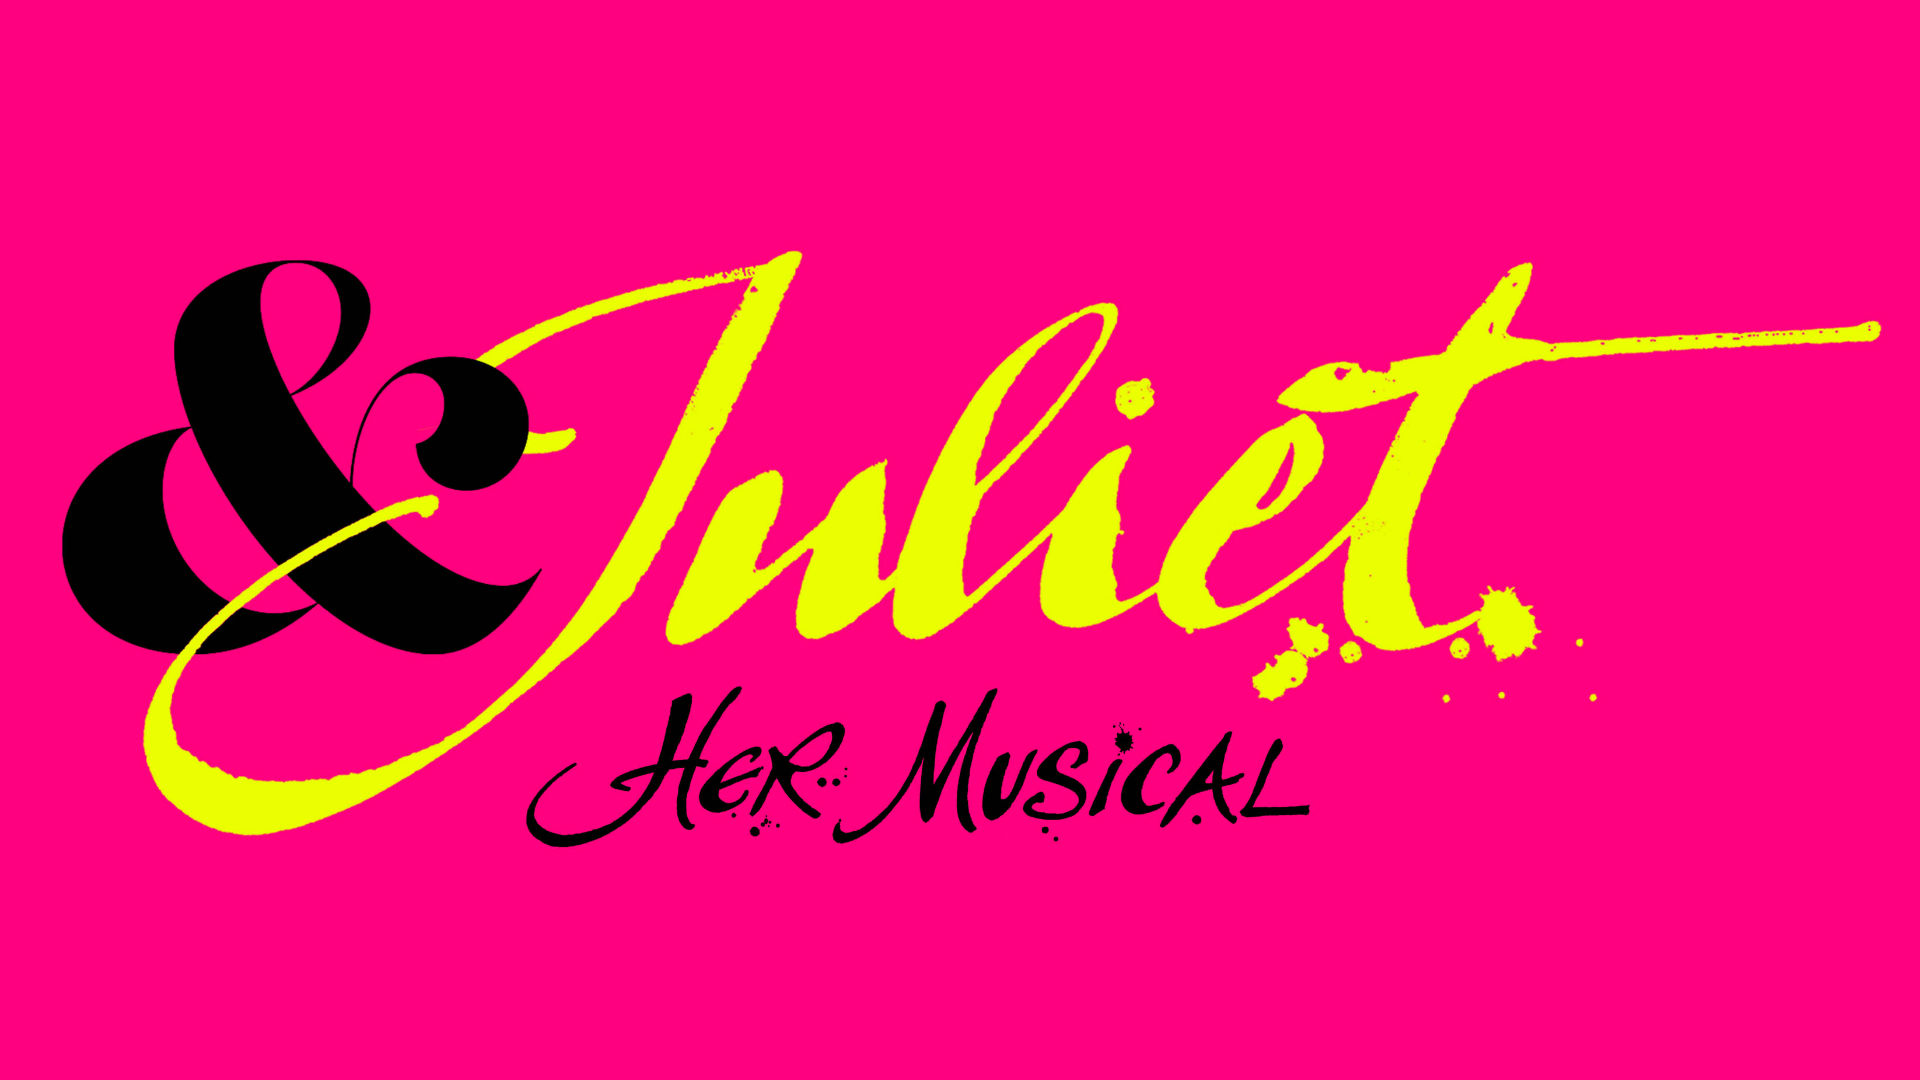 Poster for the new & Juliet musical in London's West End